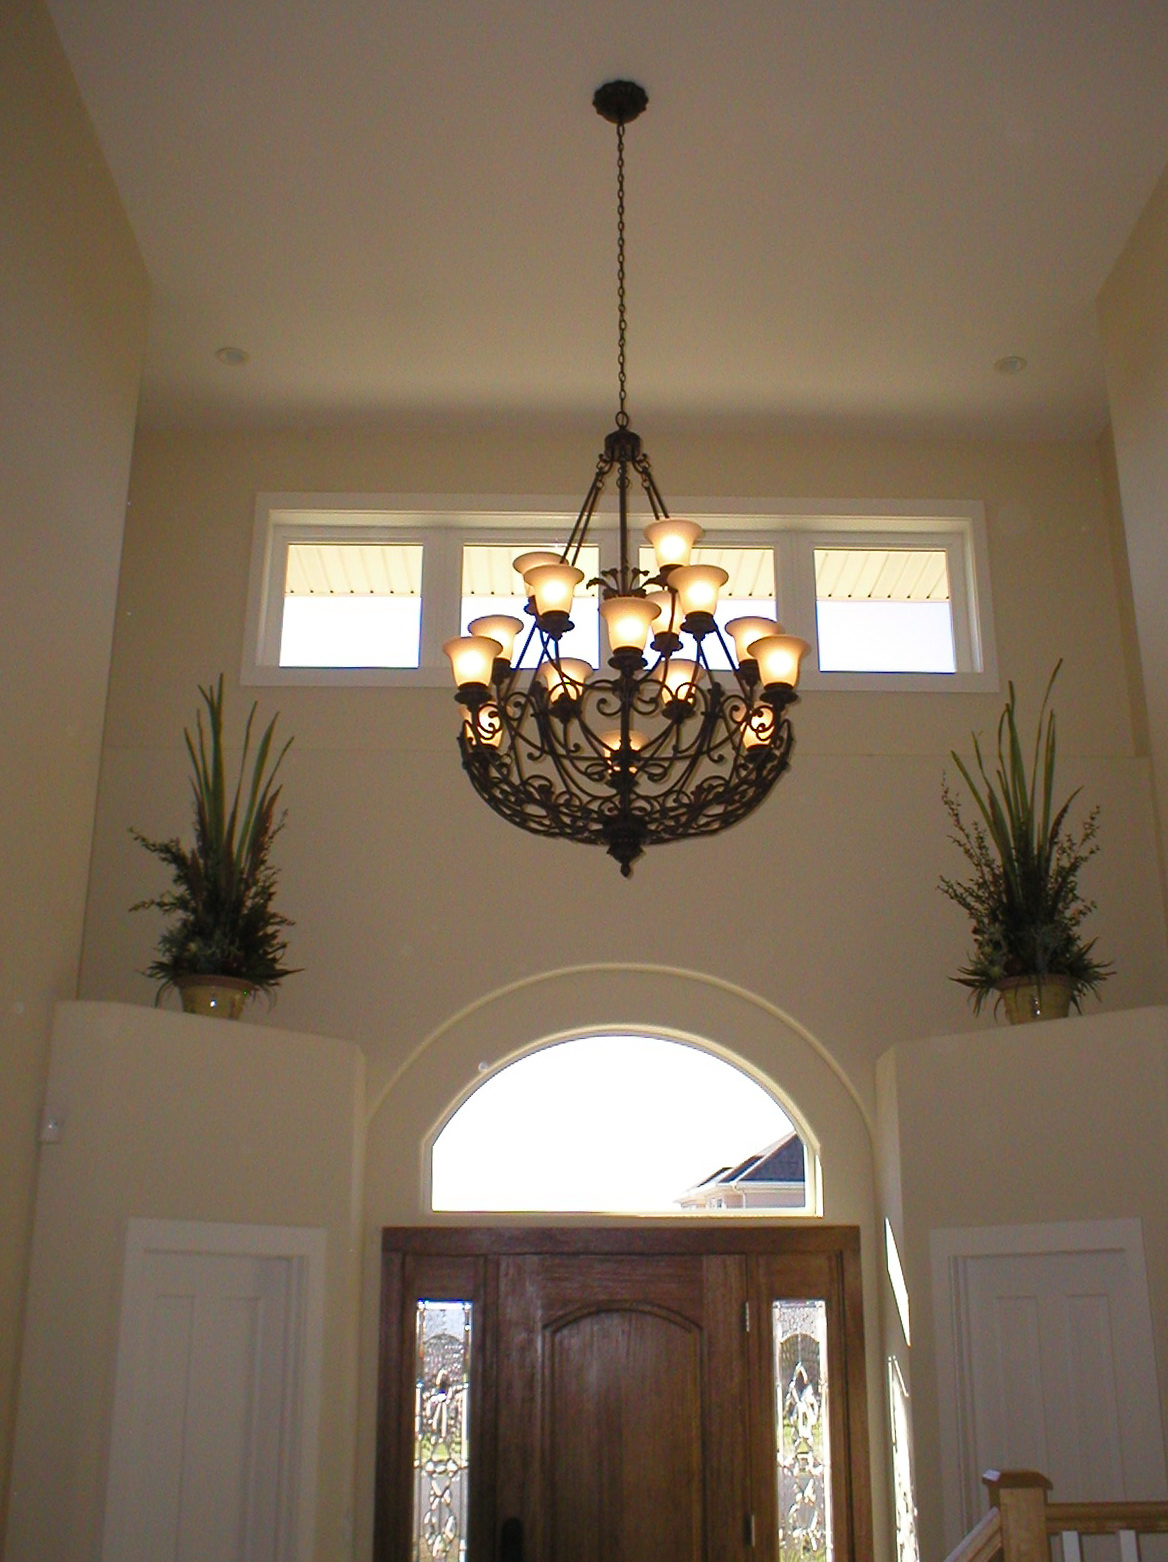 Hanging A Chandelier From A Vaulted Ceiling  Home Design